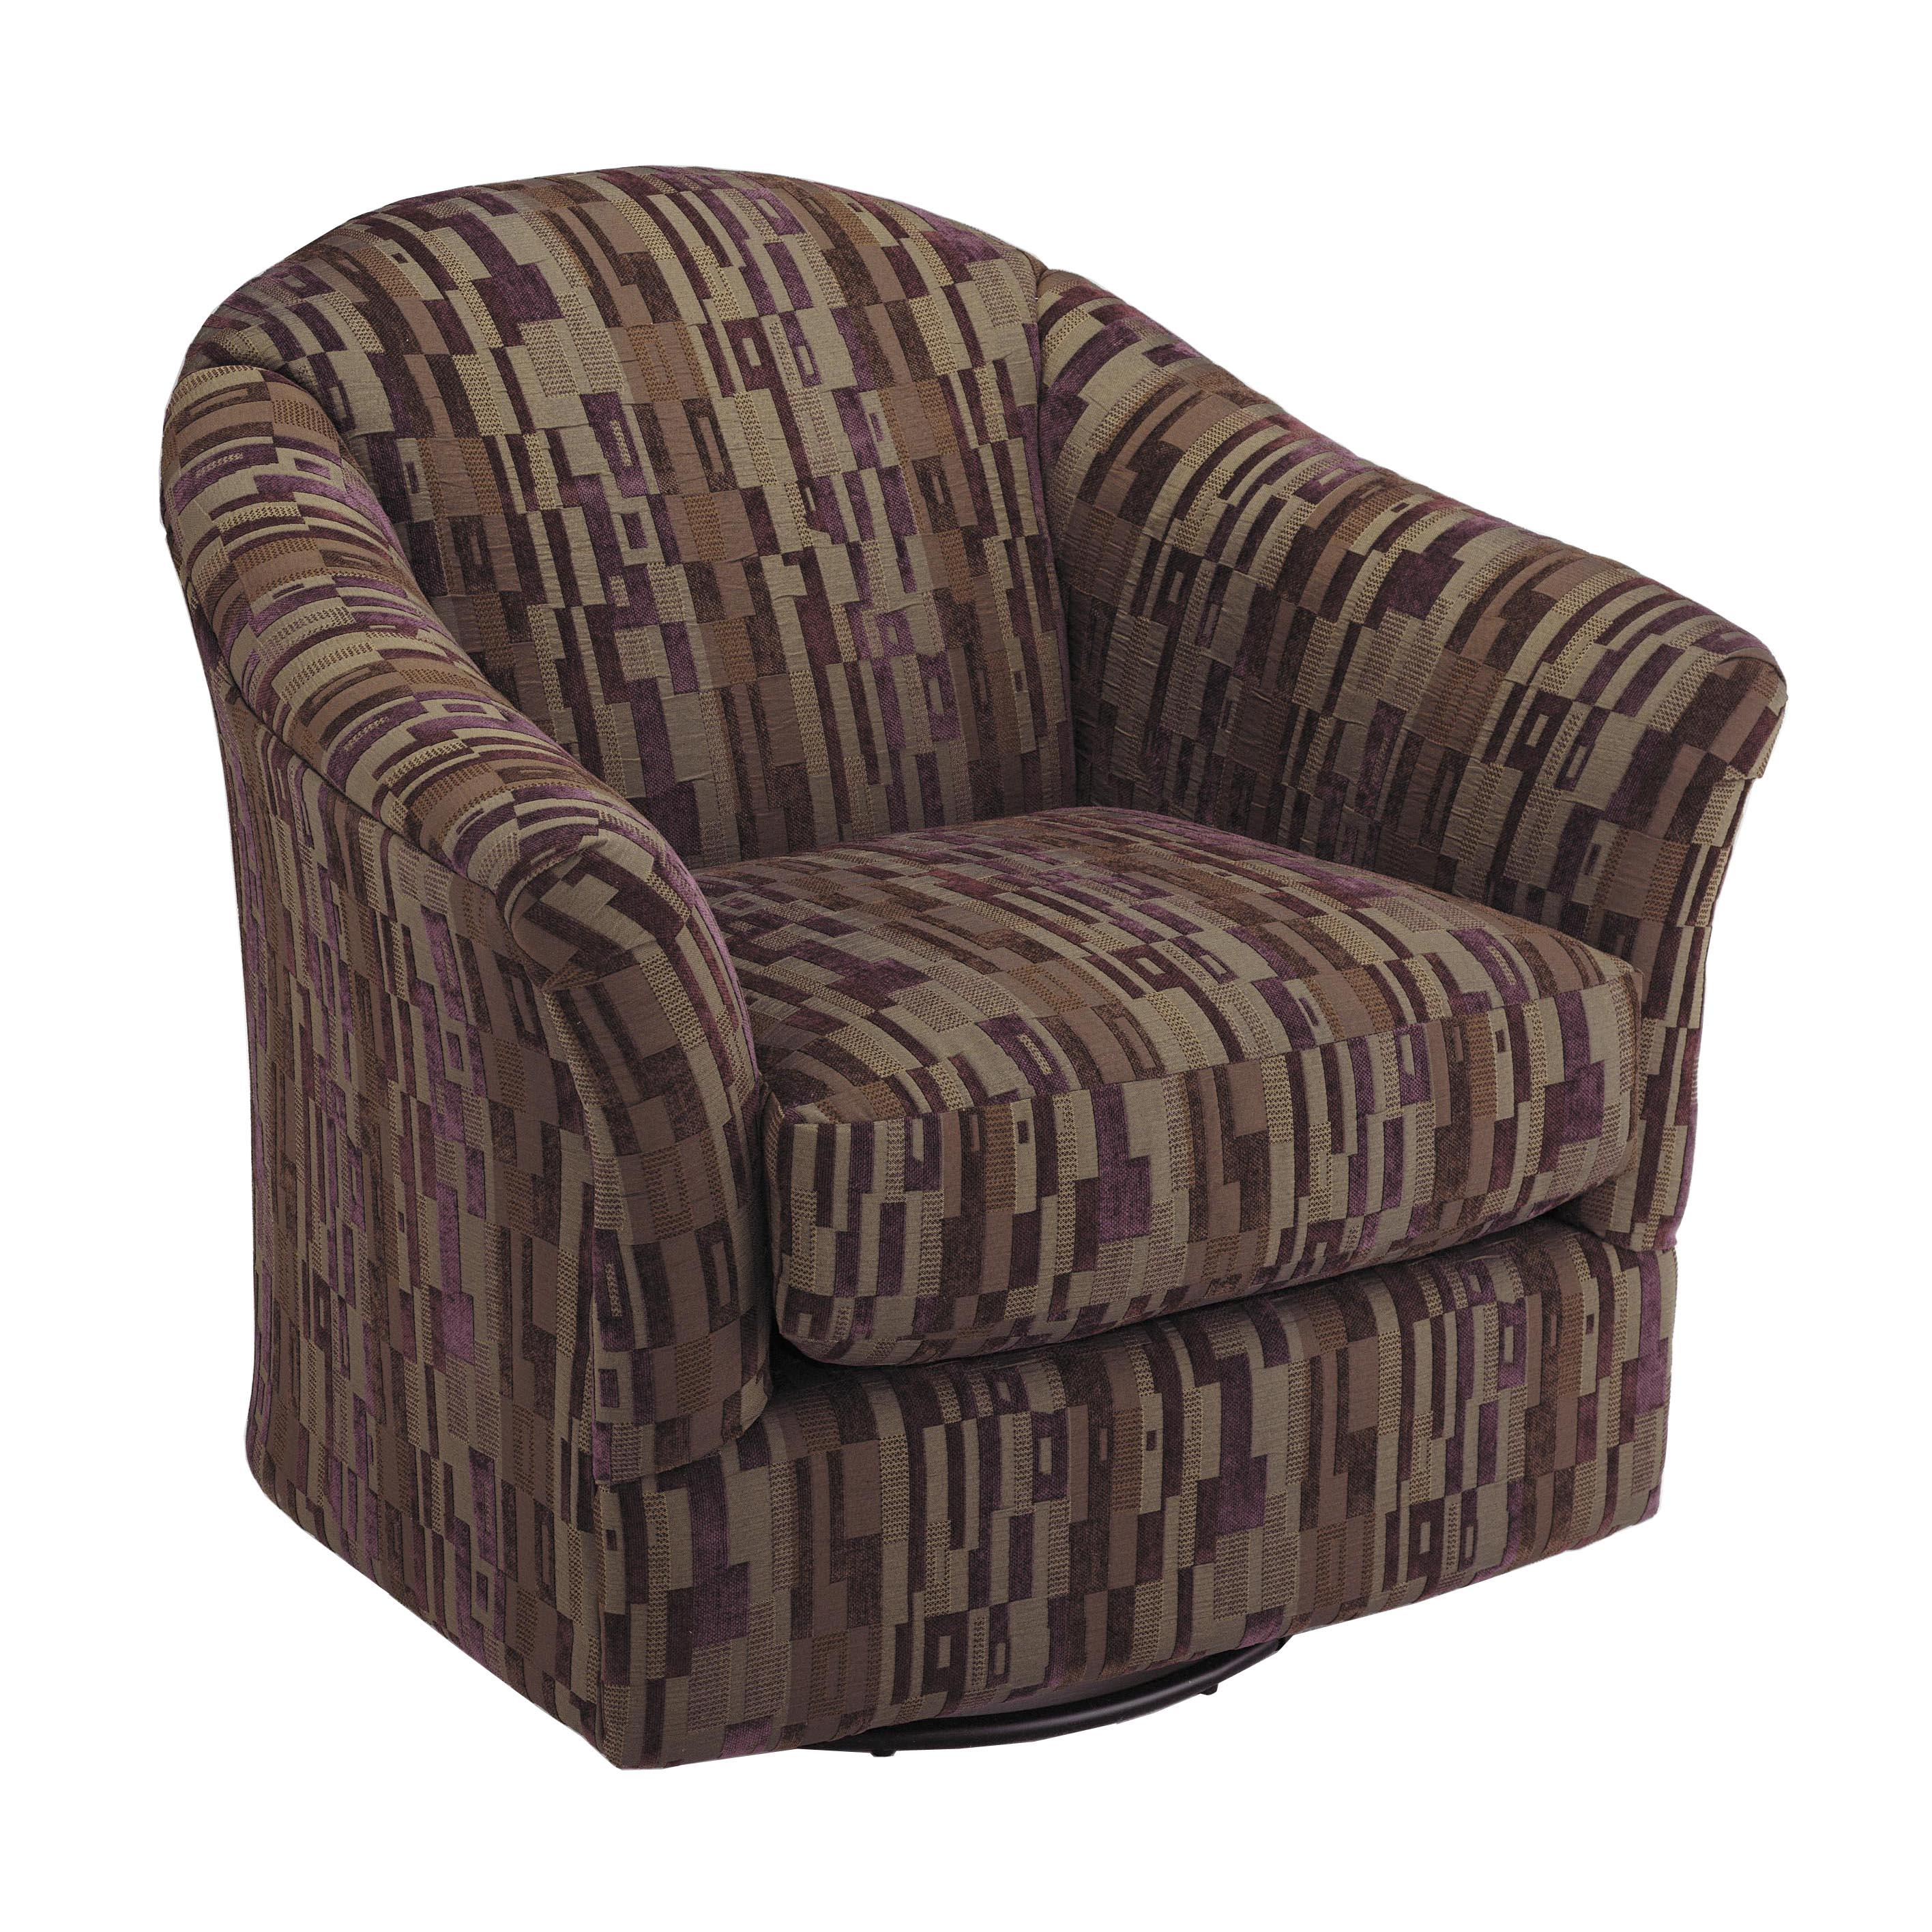 best swivel glider chair adirondack lowes home furnishings chairs glide darby